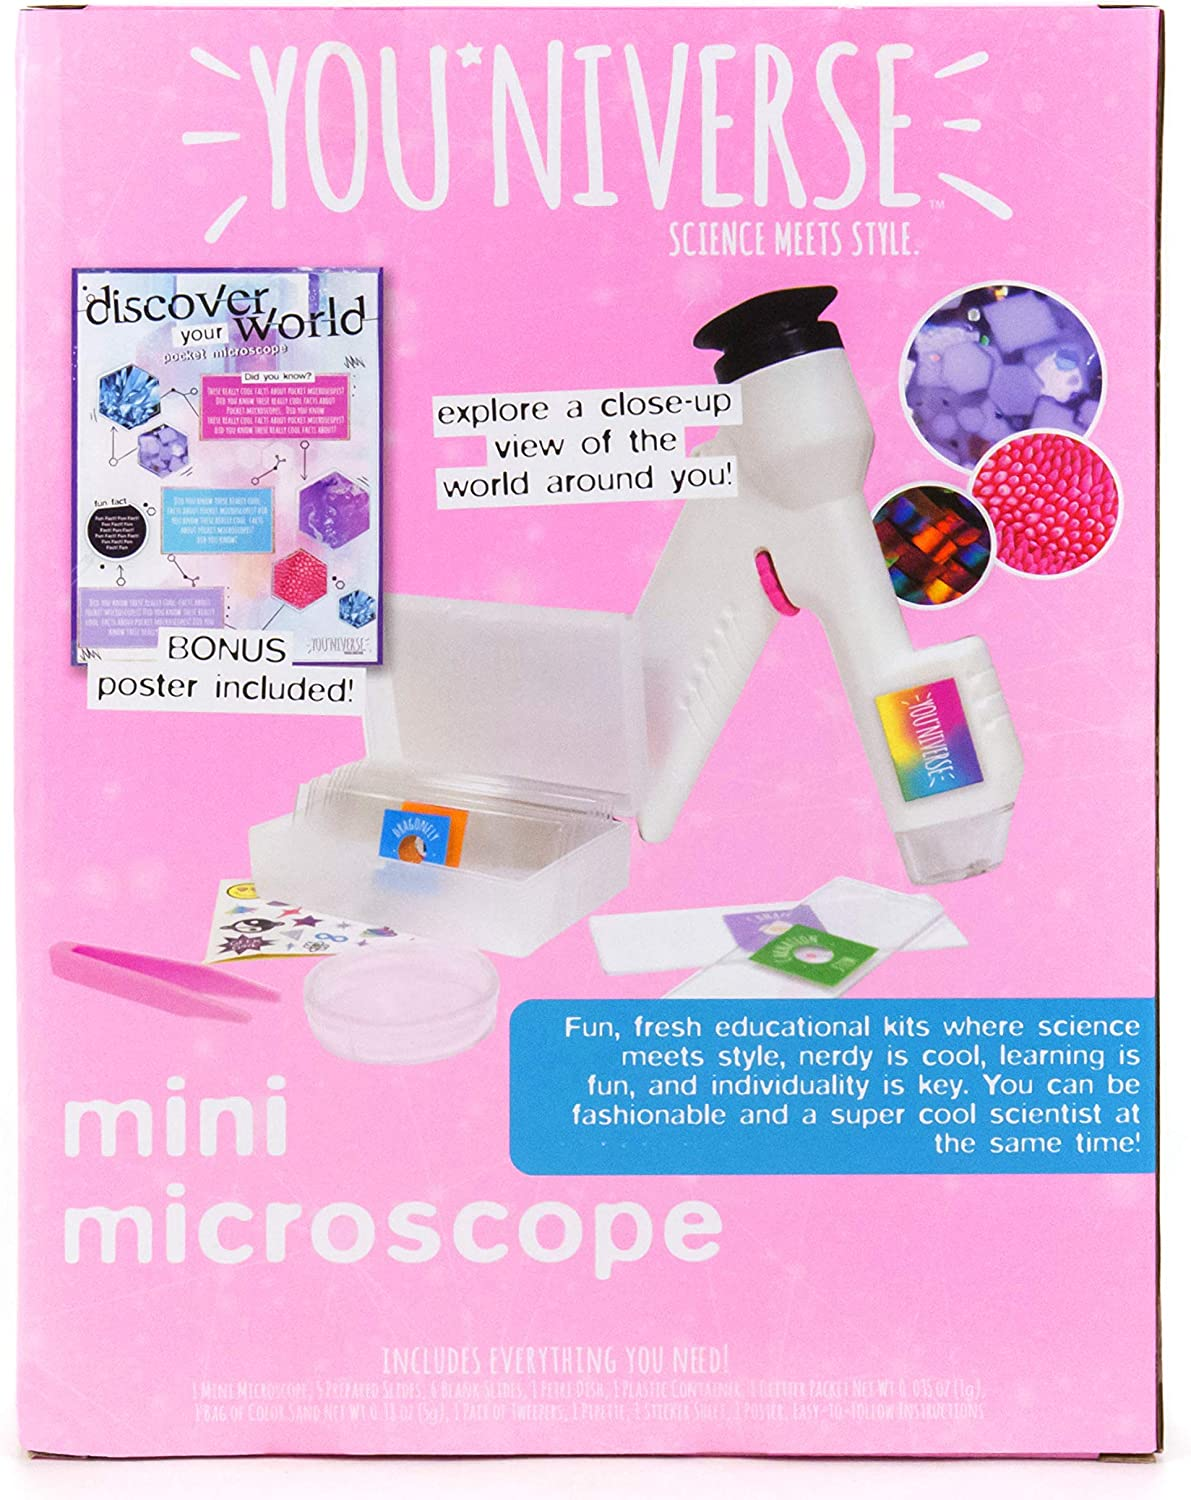 Includes 1 Microscope YouNiverse Mini Microscope by Horizon Group Usa 6 Blank Slides /& More Stem Science Kit 5 Prepared Slides